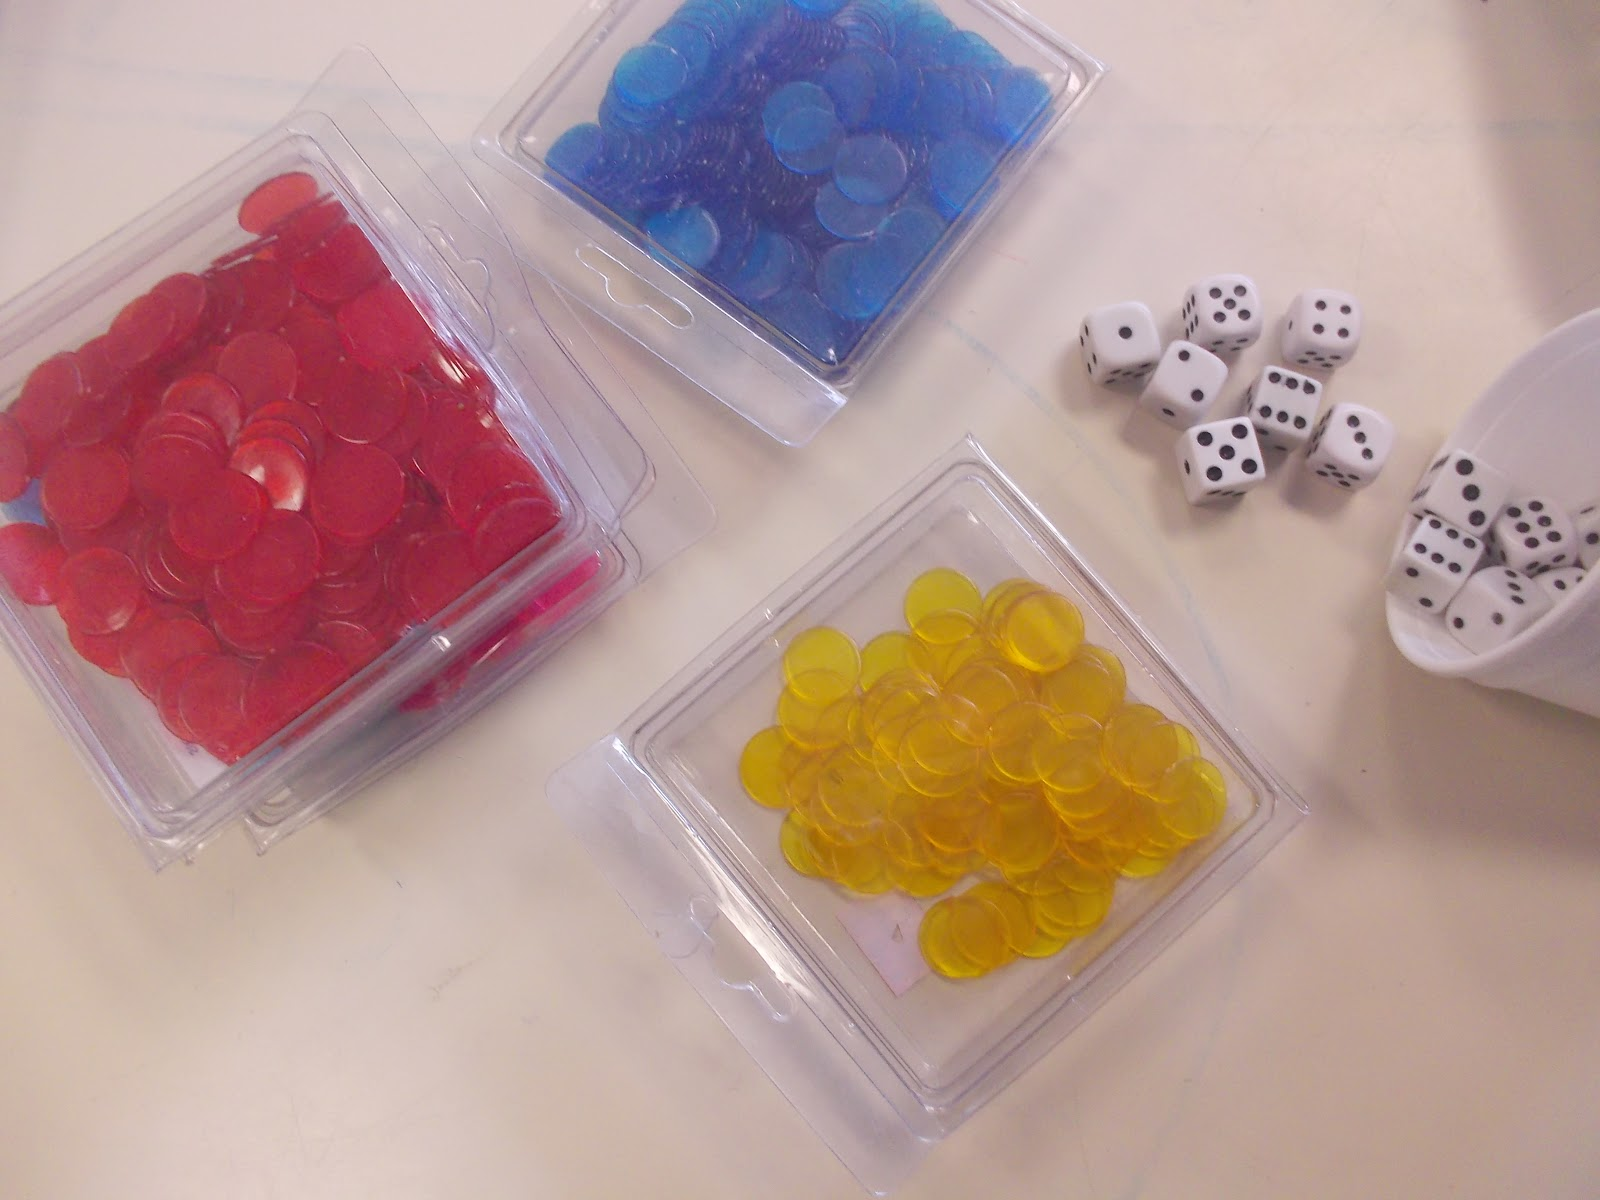 2 dice are rolled probability theory pdf merge